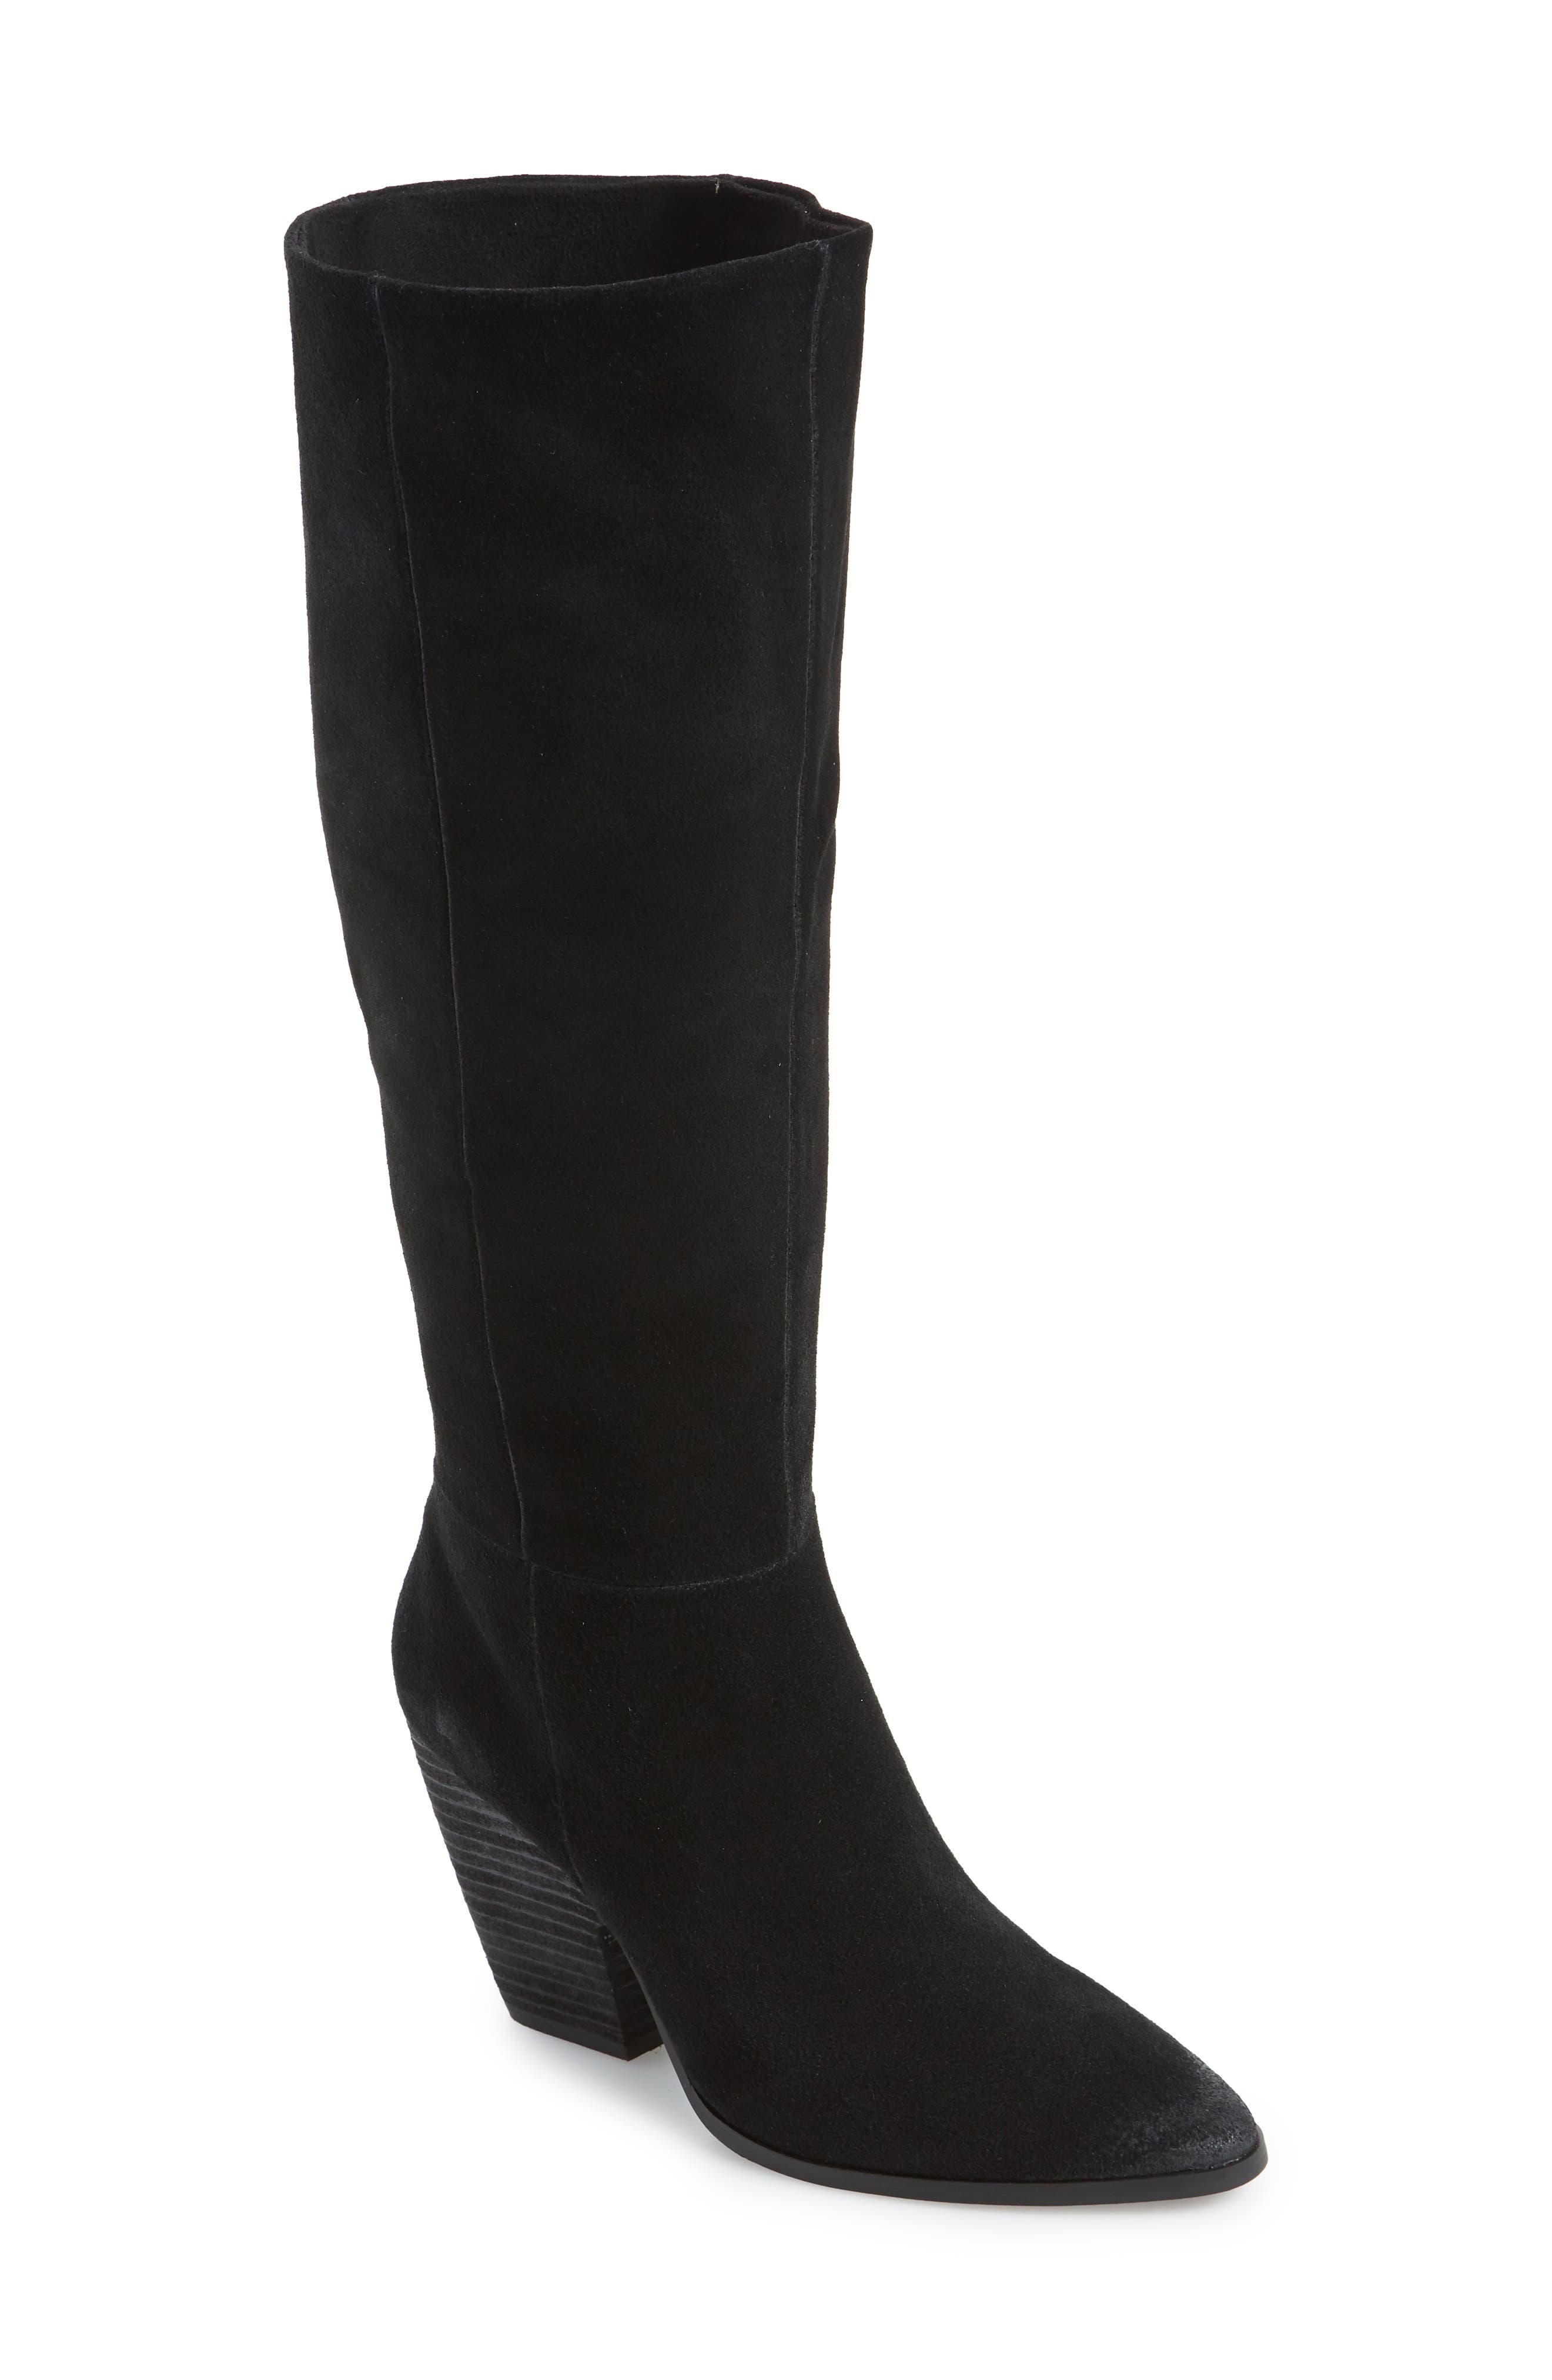 Nyles Knee High Boot,                         Main,                         color, BLACK SUEDE